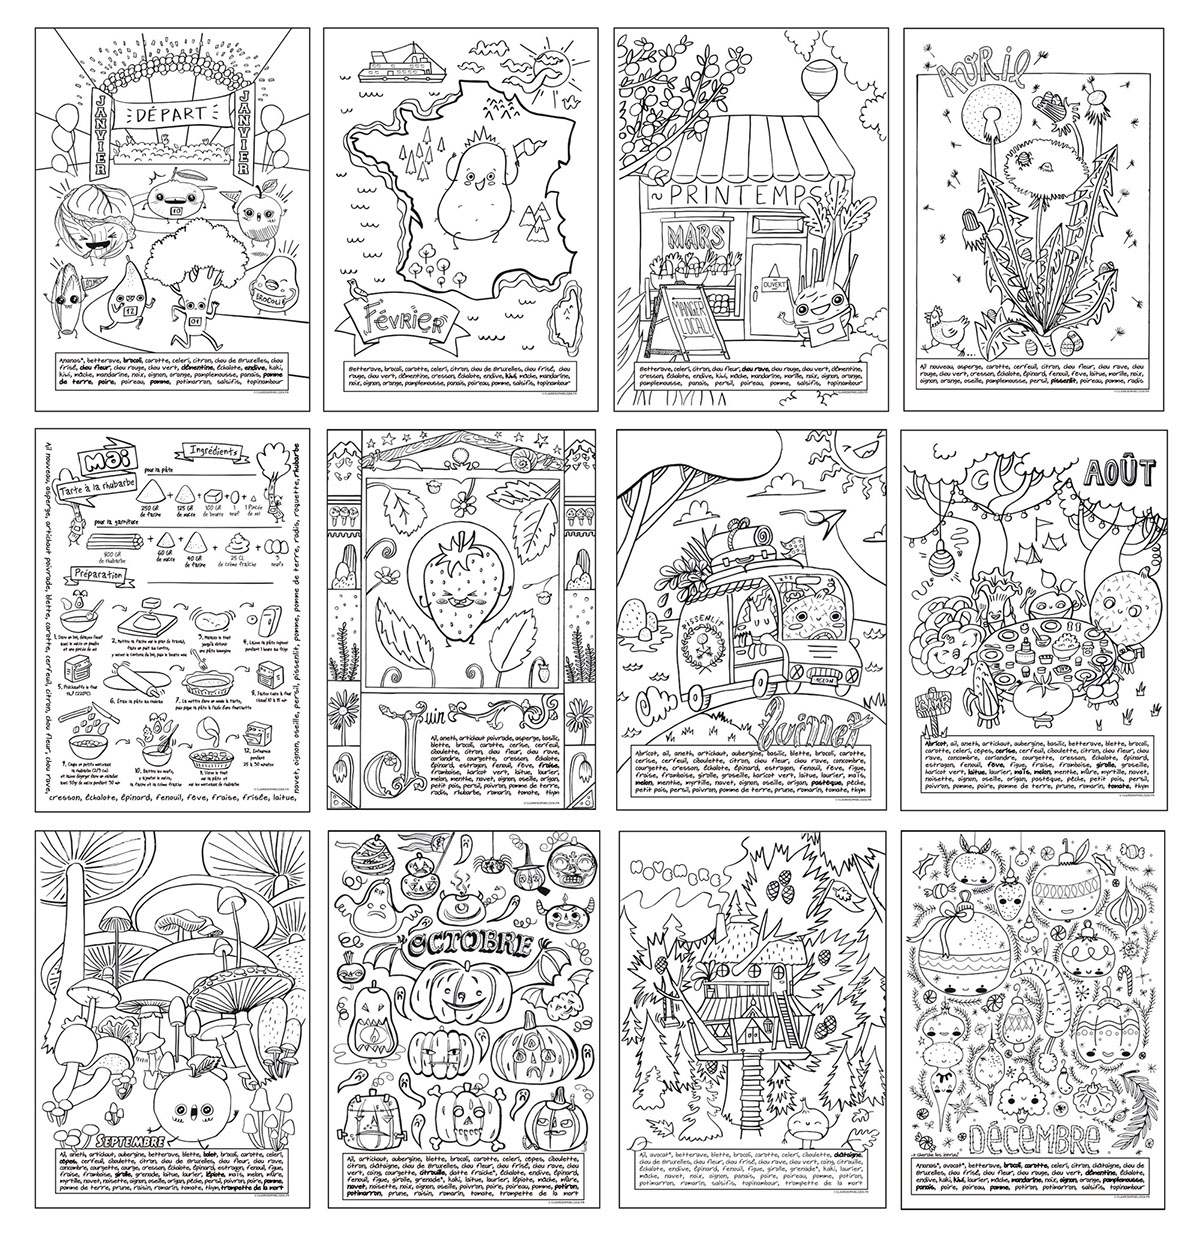 cahier de coloriage on behance. Black Bedroom Furniture Sets. Home Design Ideas